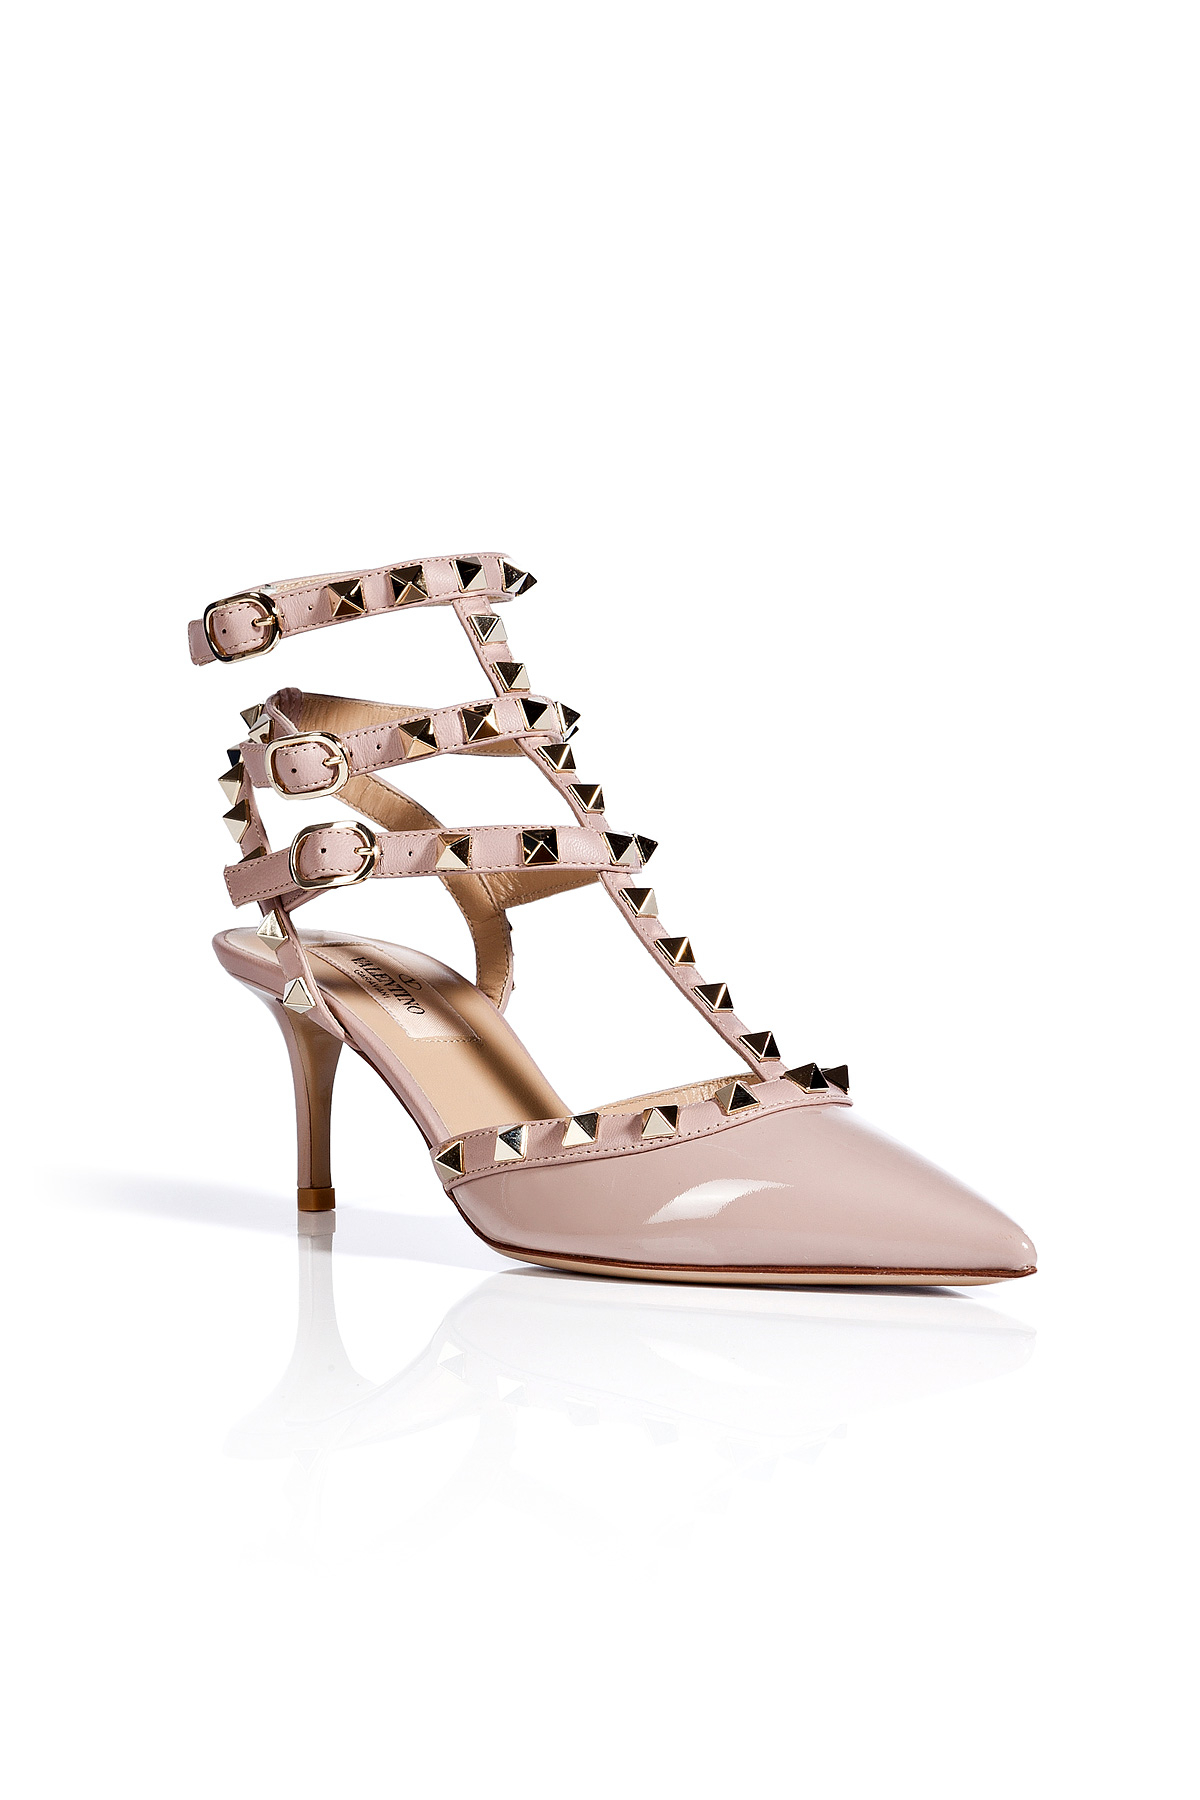 valentino patent leather rockstud kitten heels in pink lyst. Black Bedroom Furniture Sets. Home Design Ideas